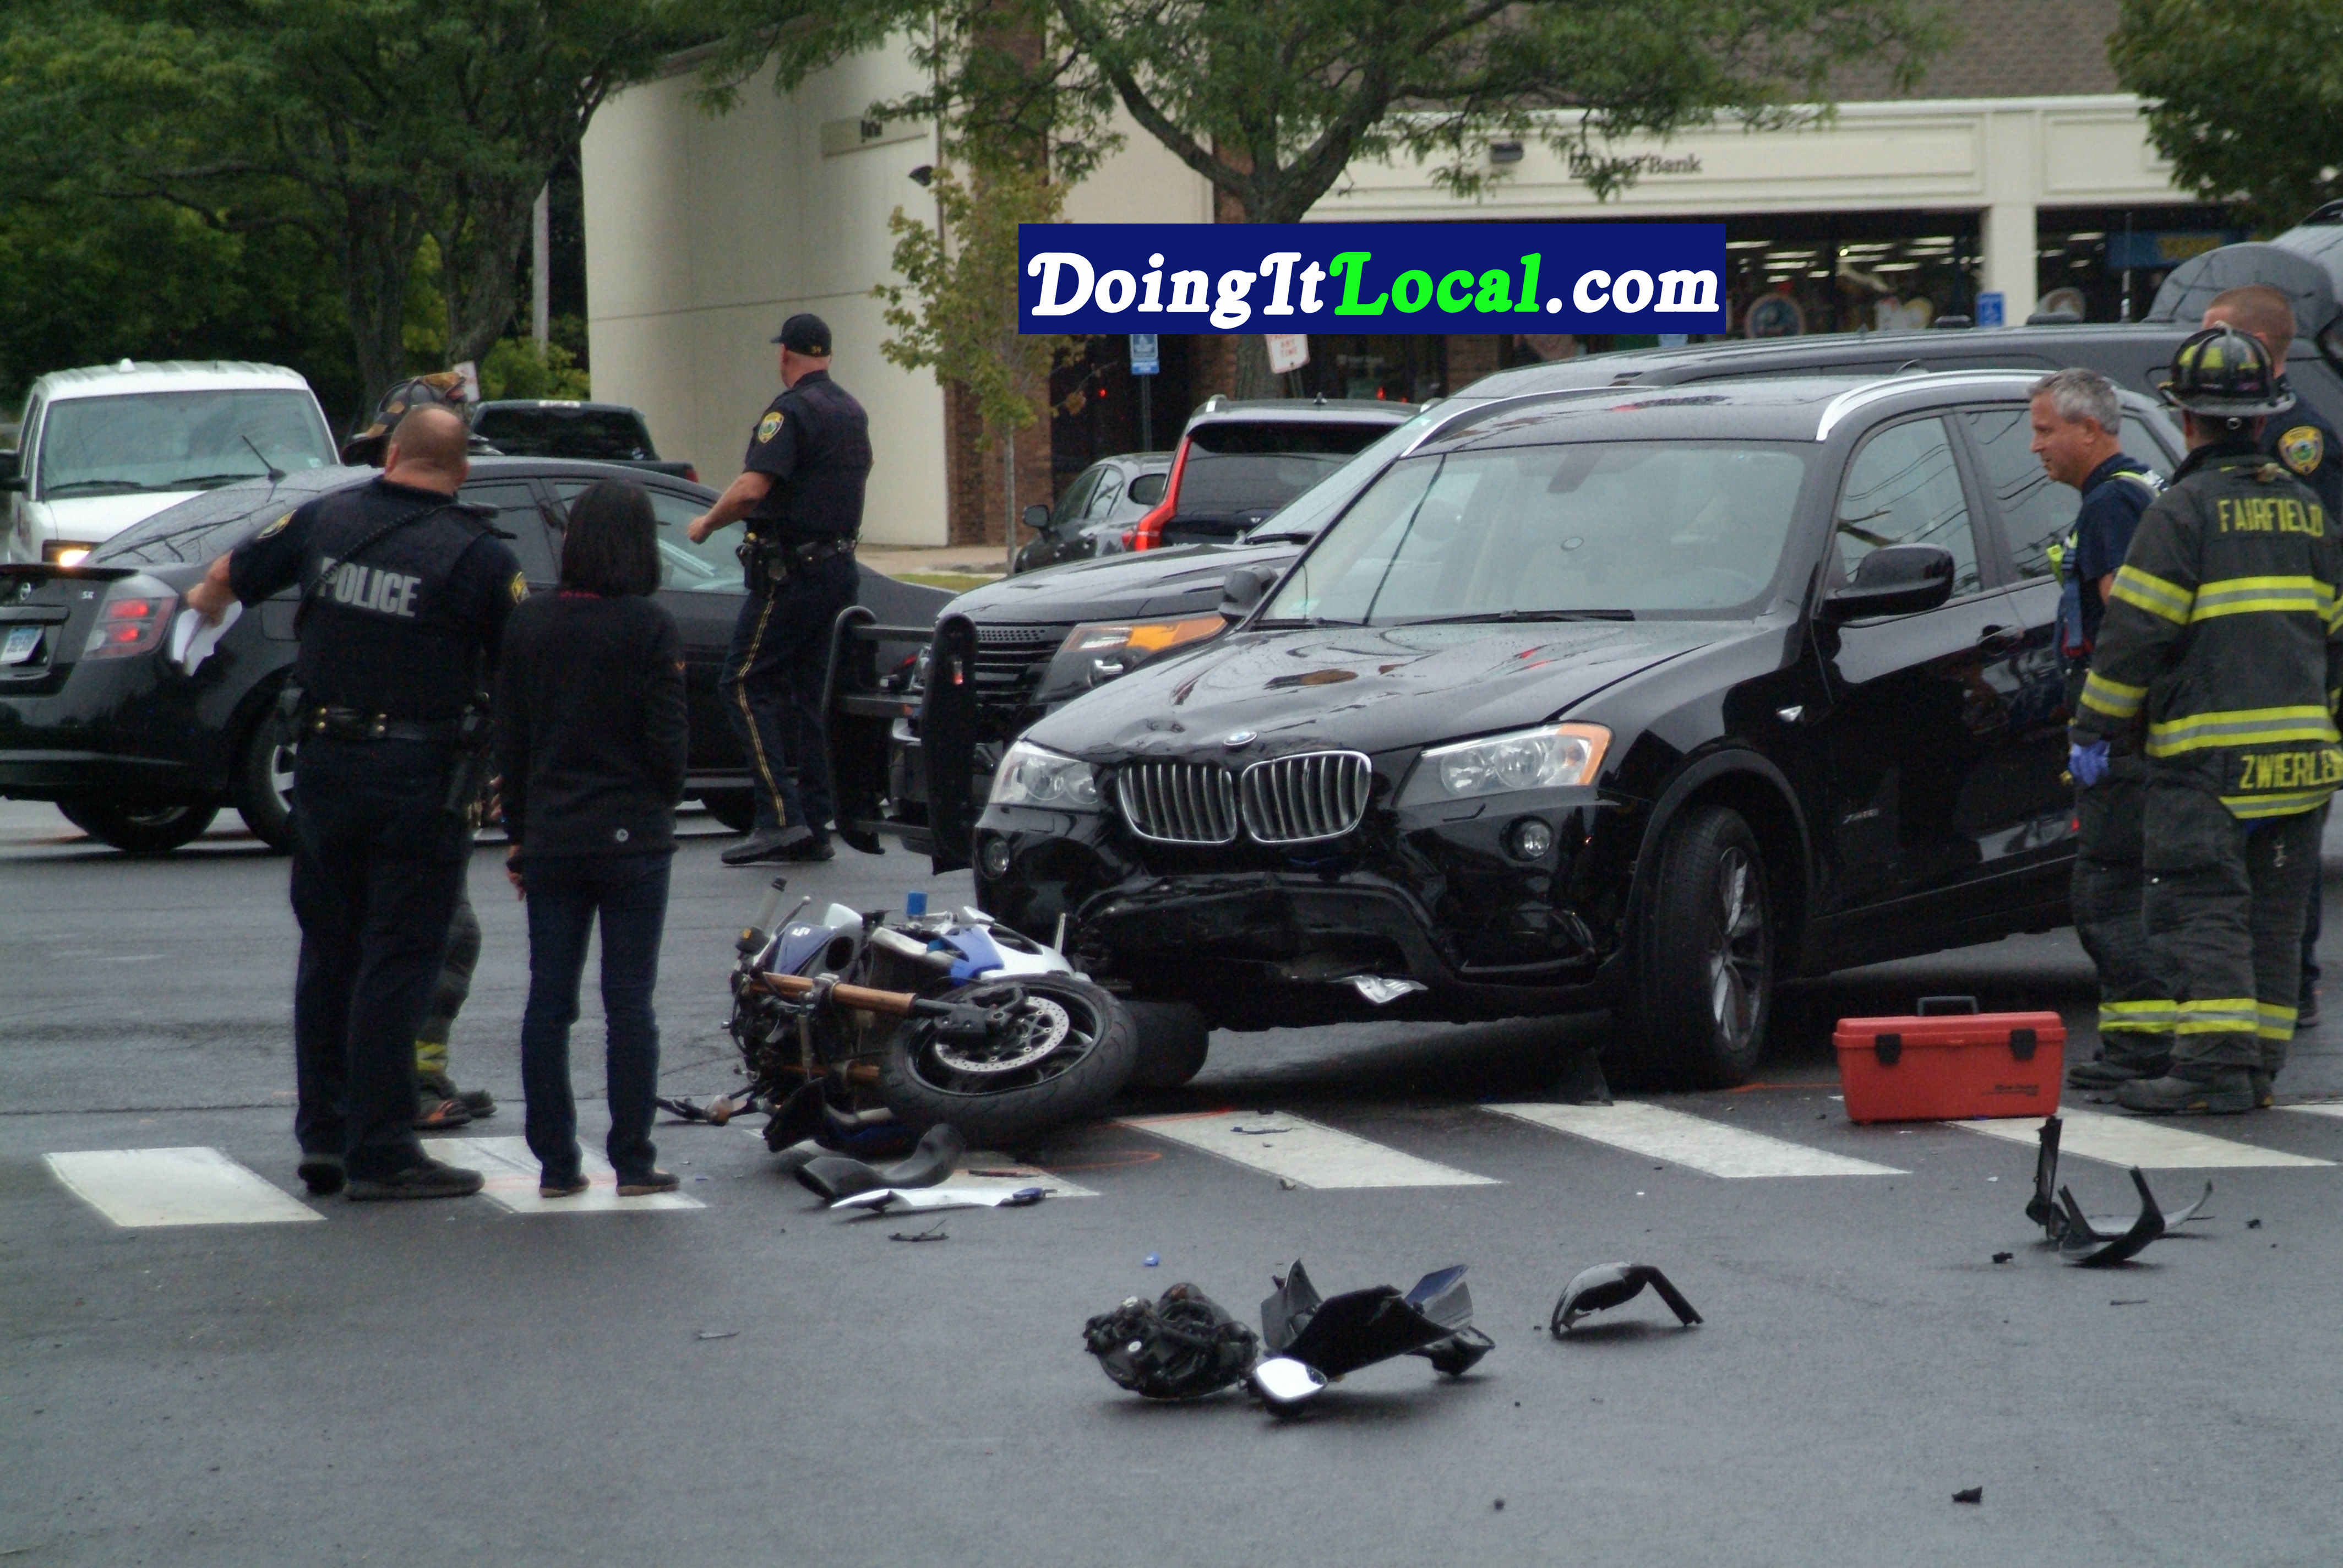 351pm Fairfield CT Police Are Investigating A Crash Between Car And Motorcycle At North Benson Road Post The Motorcyclist Was Injured